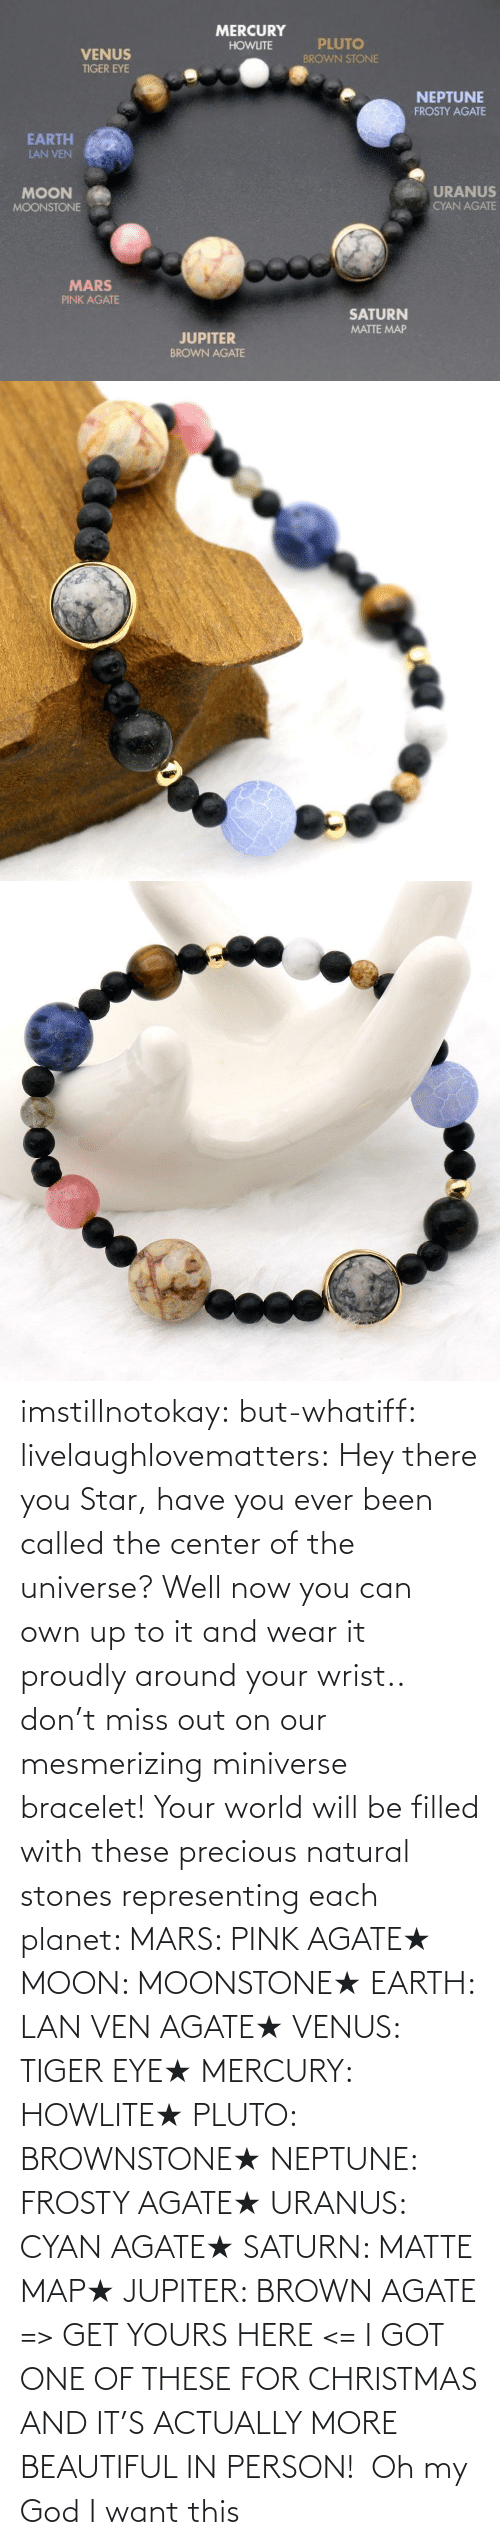 Umblr: imstillnotokay:  but-whatiff: livelaughlovematters:  Hey there you Star, have you ever been called the center of the universe? Well now you can own up to it and wear it proudly around your wrist.. don't miss out on our mesmerizing miniverse bracelet! Your world will be filled with these precious natural stones representing each planet:  MARS: PINK AGATE★ MOON: MOONSTONE★ EARTH: LAN VEN AGATE★ VENUS: TIGER EYE★ MERCURY: HOWLITE★ PLUTO: BROWNSTONE★ NEPTUNE: FROSTY AGATE★ URANUS: CYAN AGATE★ SATURN: MATTE MAP★ JUPITER: BROWN AGATE => GET YOURS HERE <=  I GOT ONE OF THESE FOR CHRISTMAS AND IT'S ACTUALLY MORE BEAUTIFUL IN PERSON!     Oh my God I want this